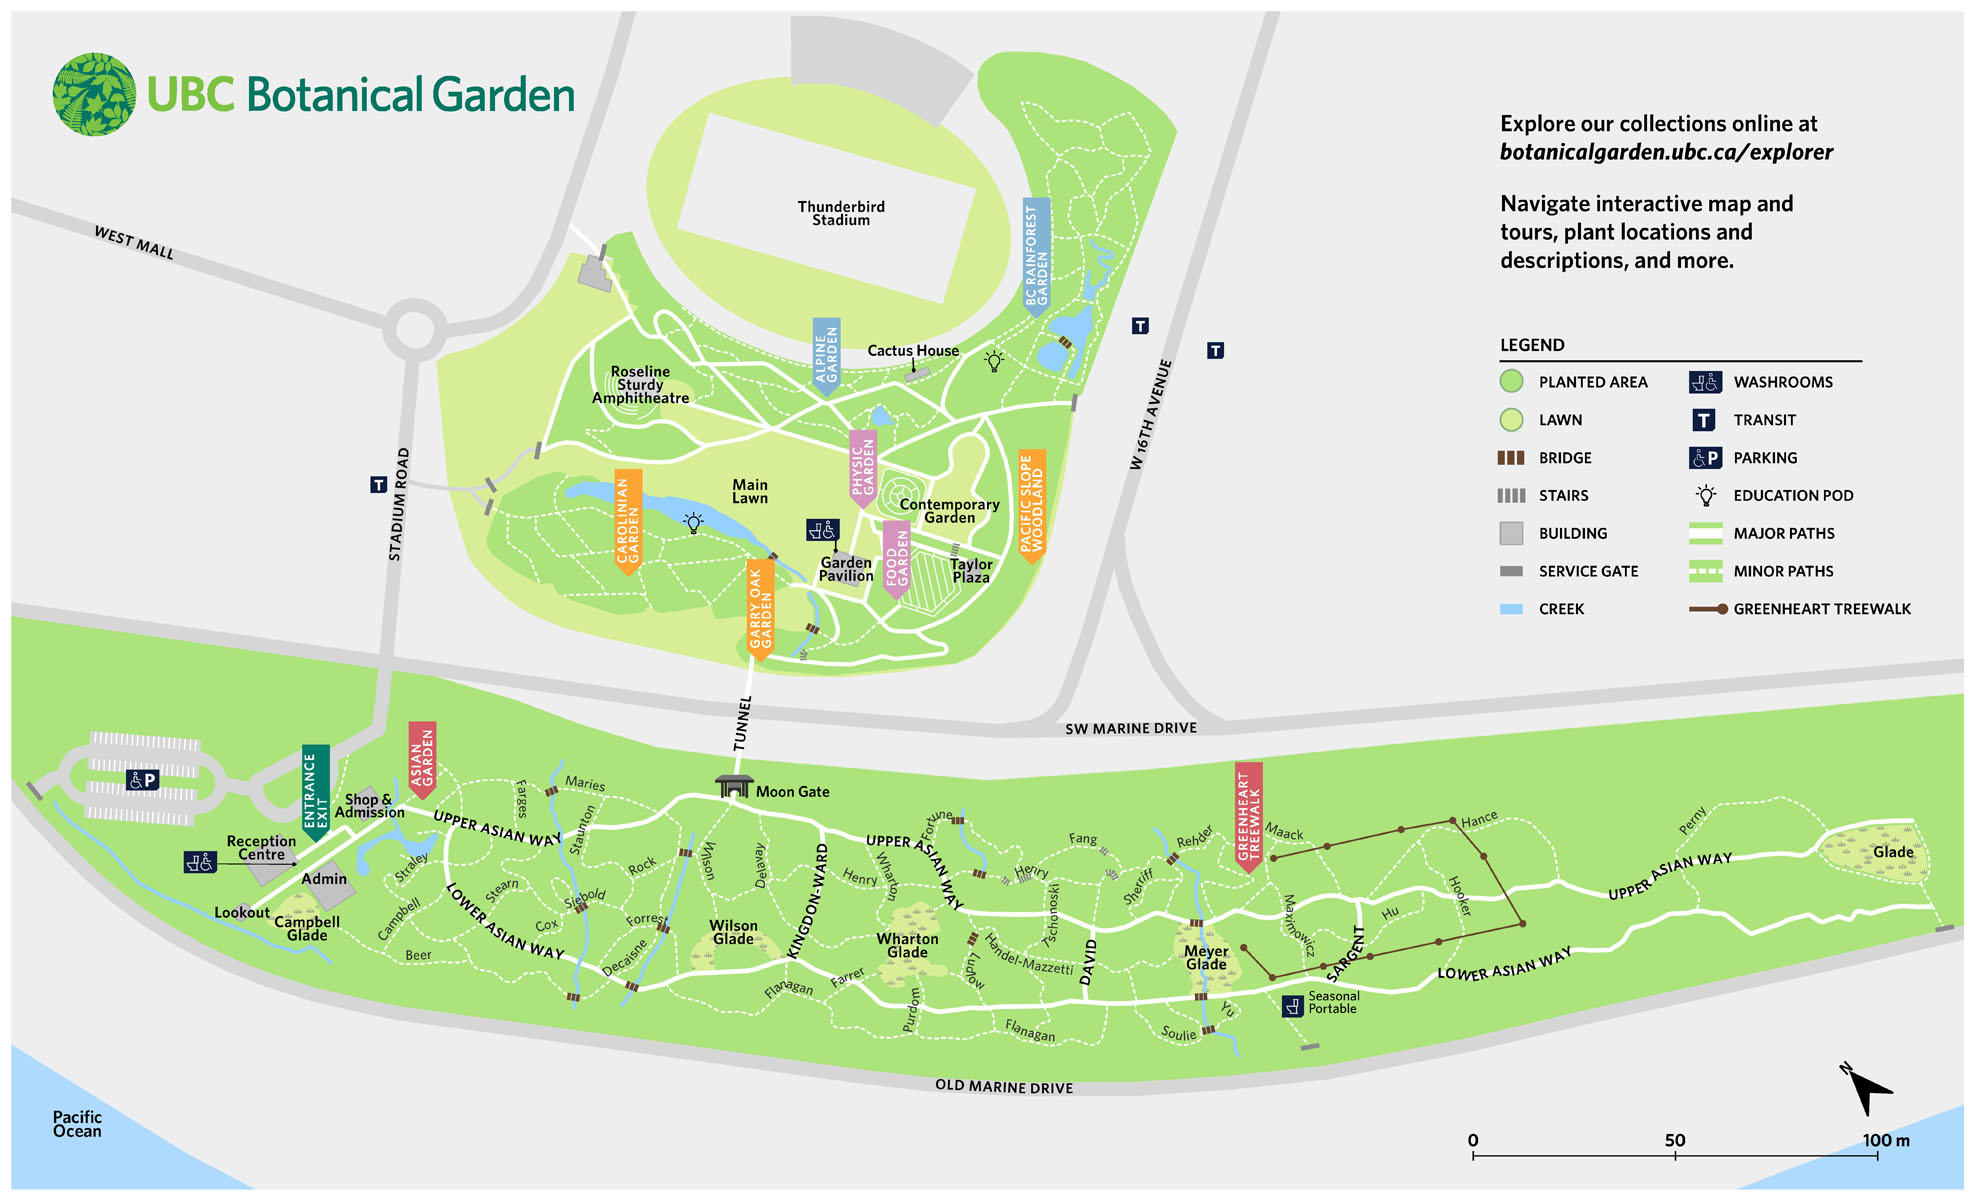 Map of UBC Botanical Garden